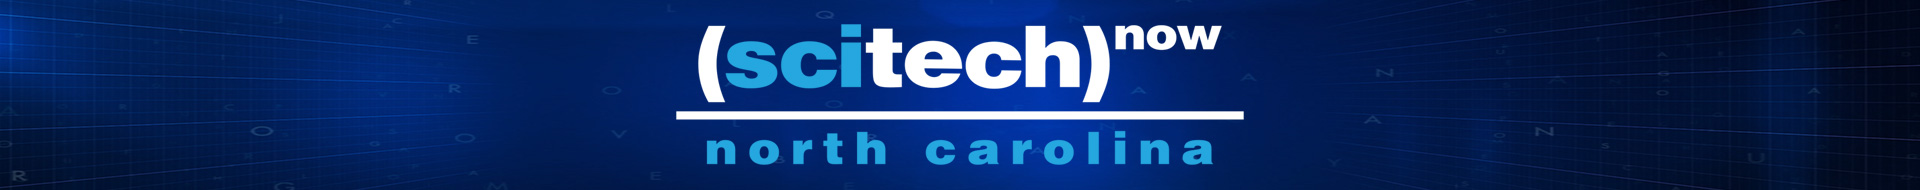 SCITECH NOW NORH CAROLINA LOGO